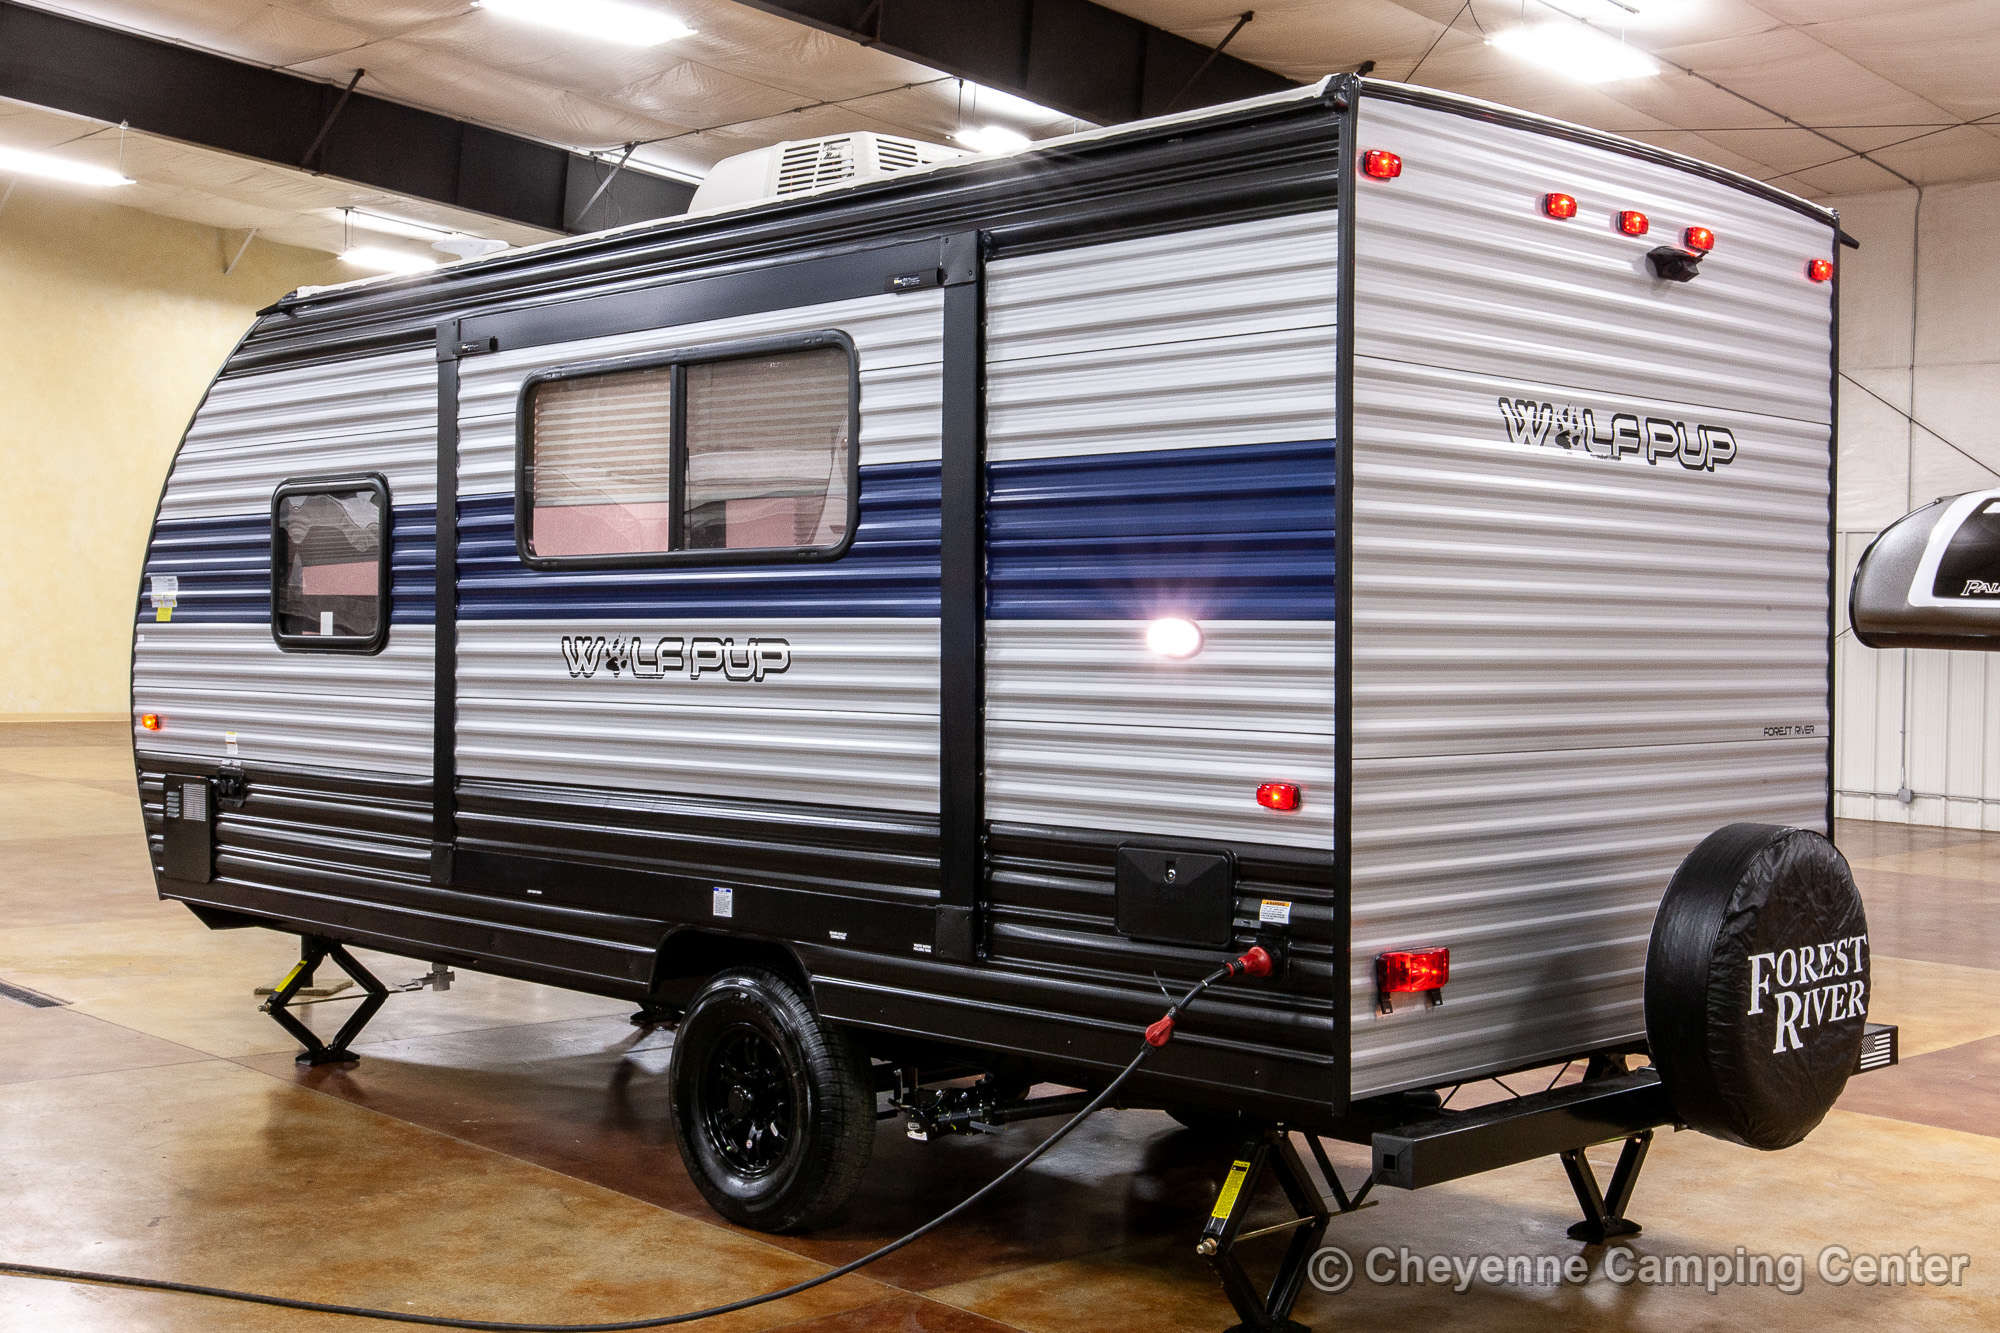 2021 Forest River Cherokee Wolf Pup 16PF Travel Trailer Exterior Image